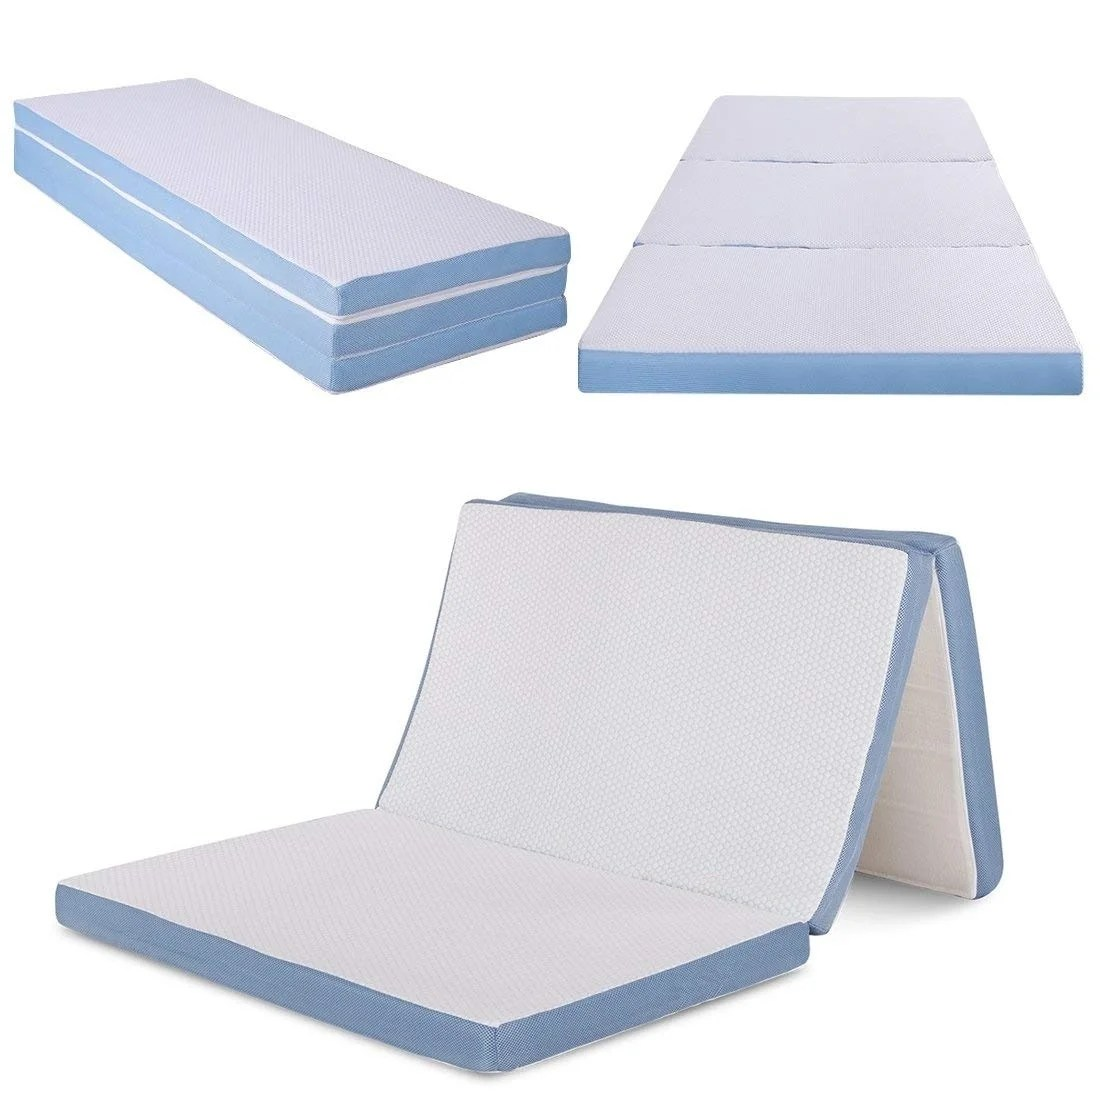 Foldable Foam Mattress Cr Sleep 3 Inch Twin Size Tri Folding Memory Foam Mattress With Cover